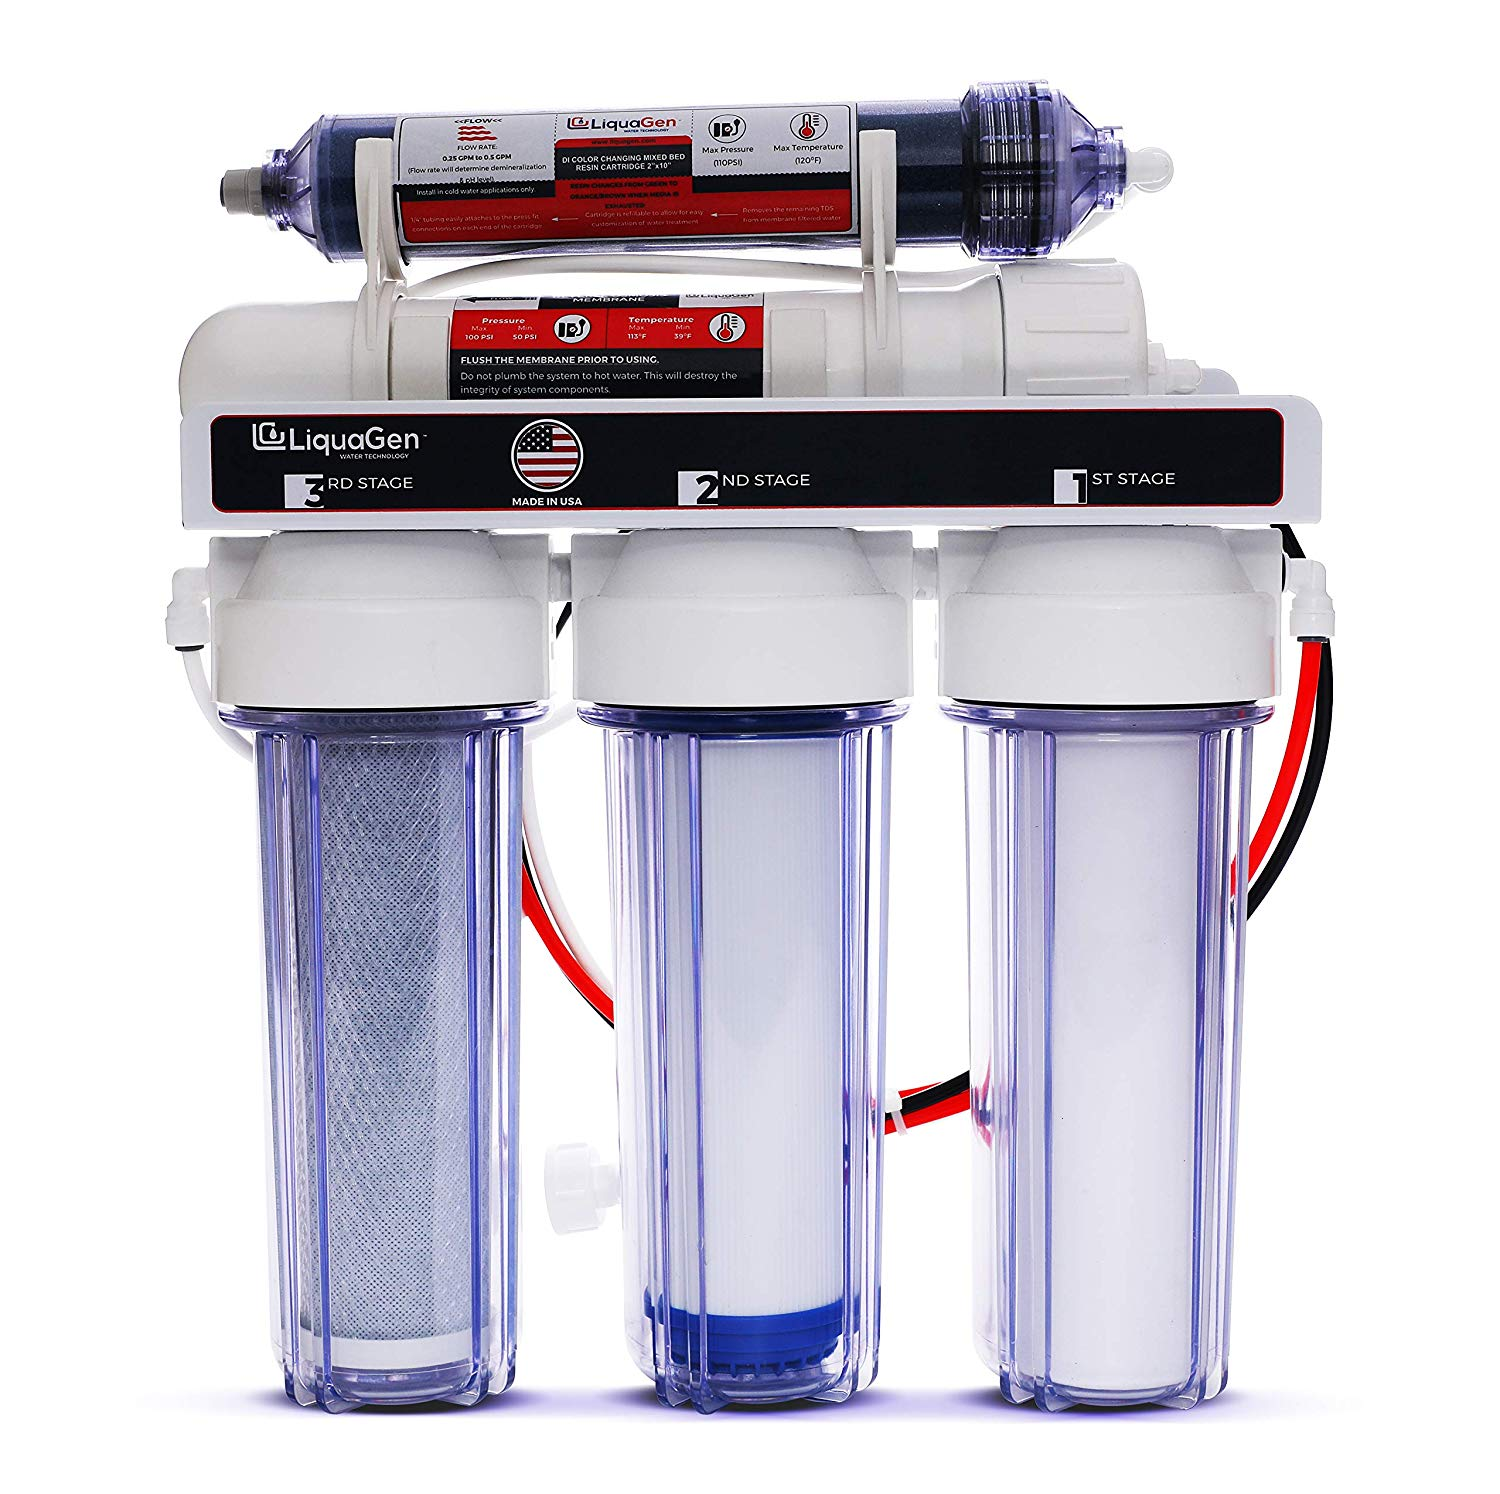 LiquaGen Complete Replacement Water Filter Kit for 4 Stage RO//DI Systems